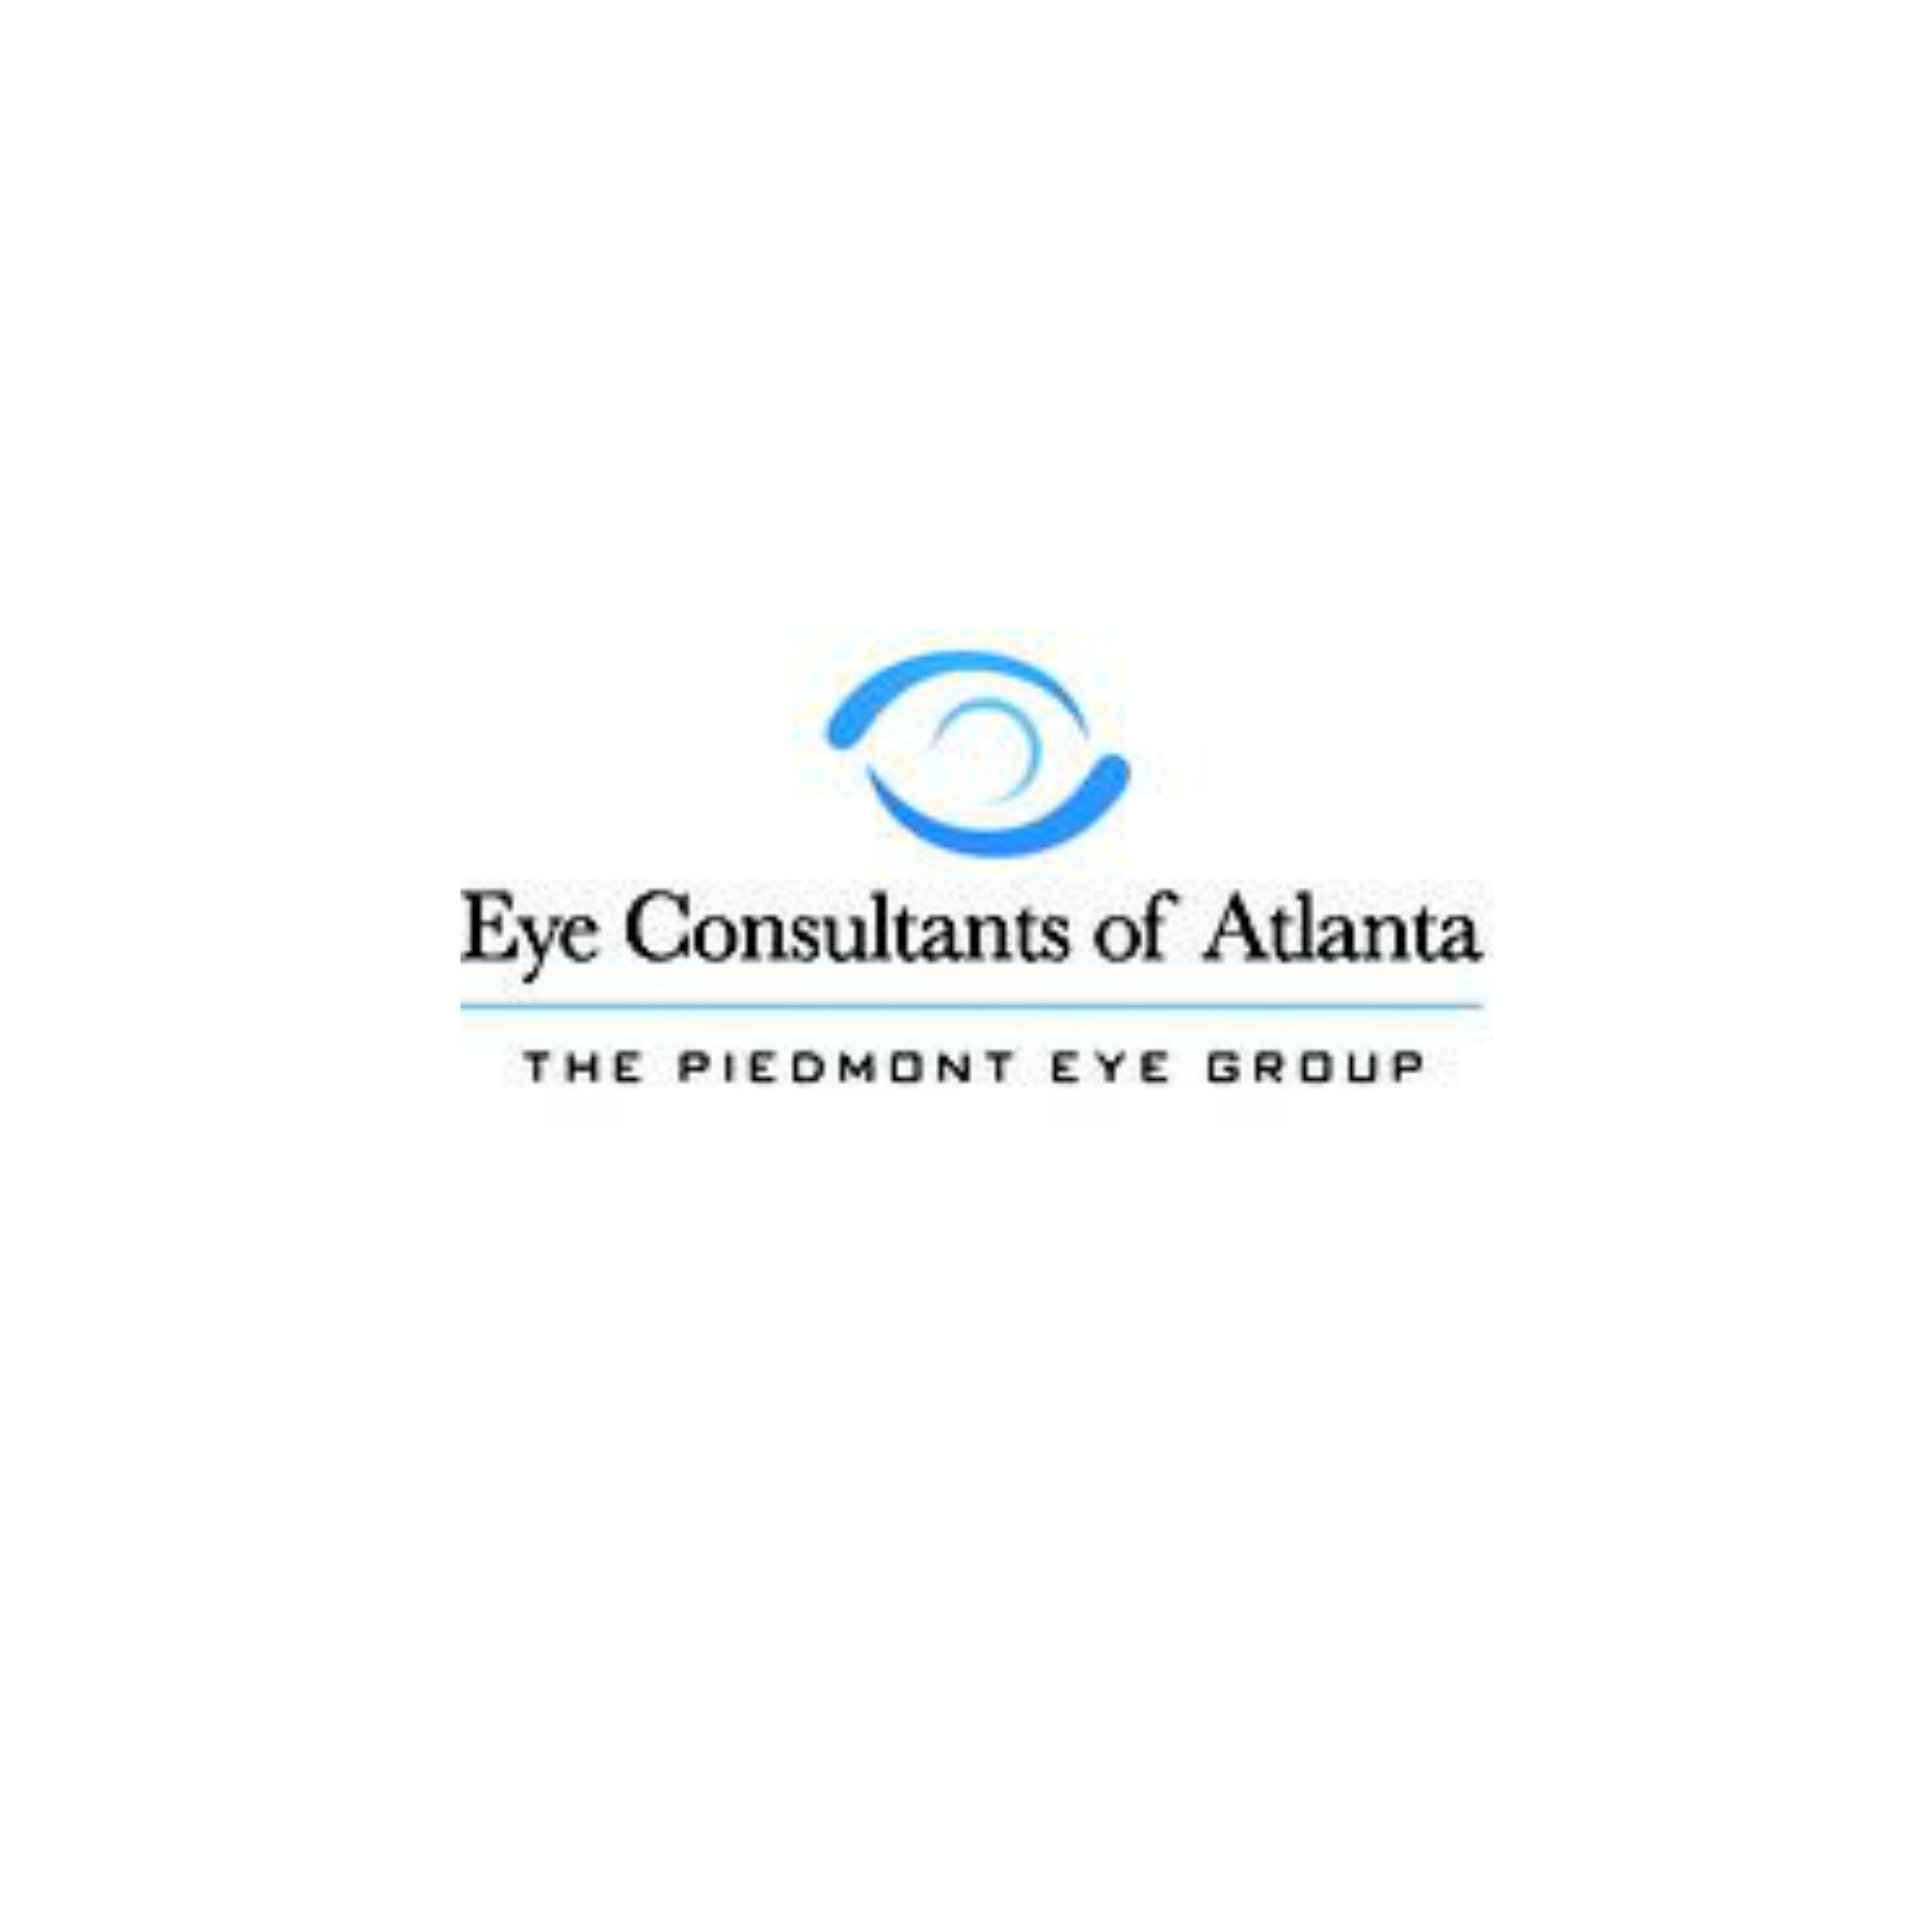 Eye Consultants of Atlanta